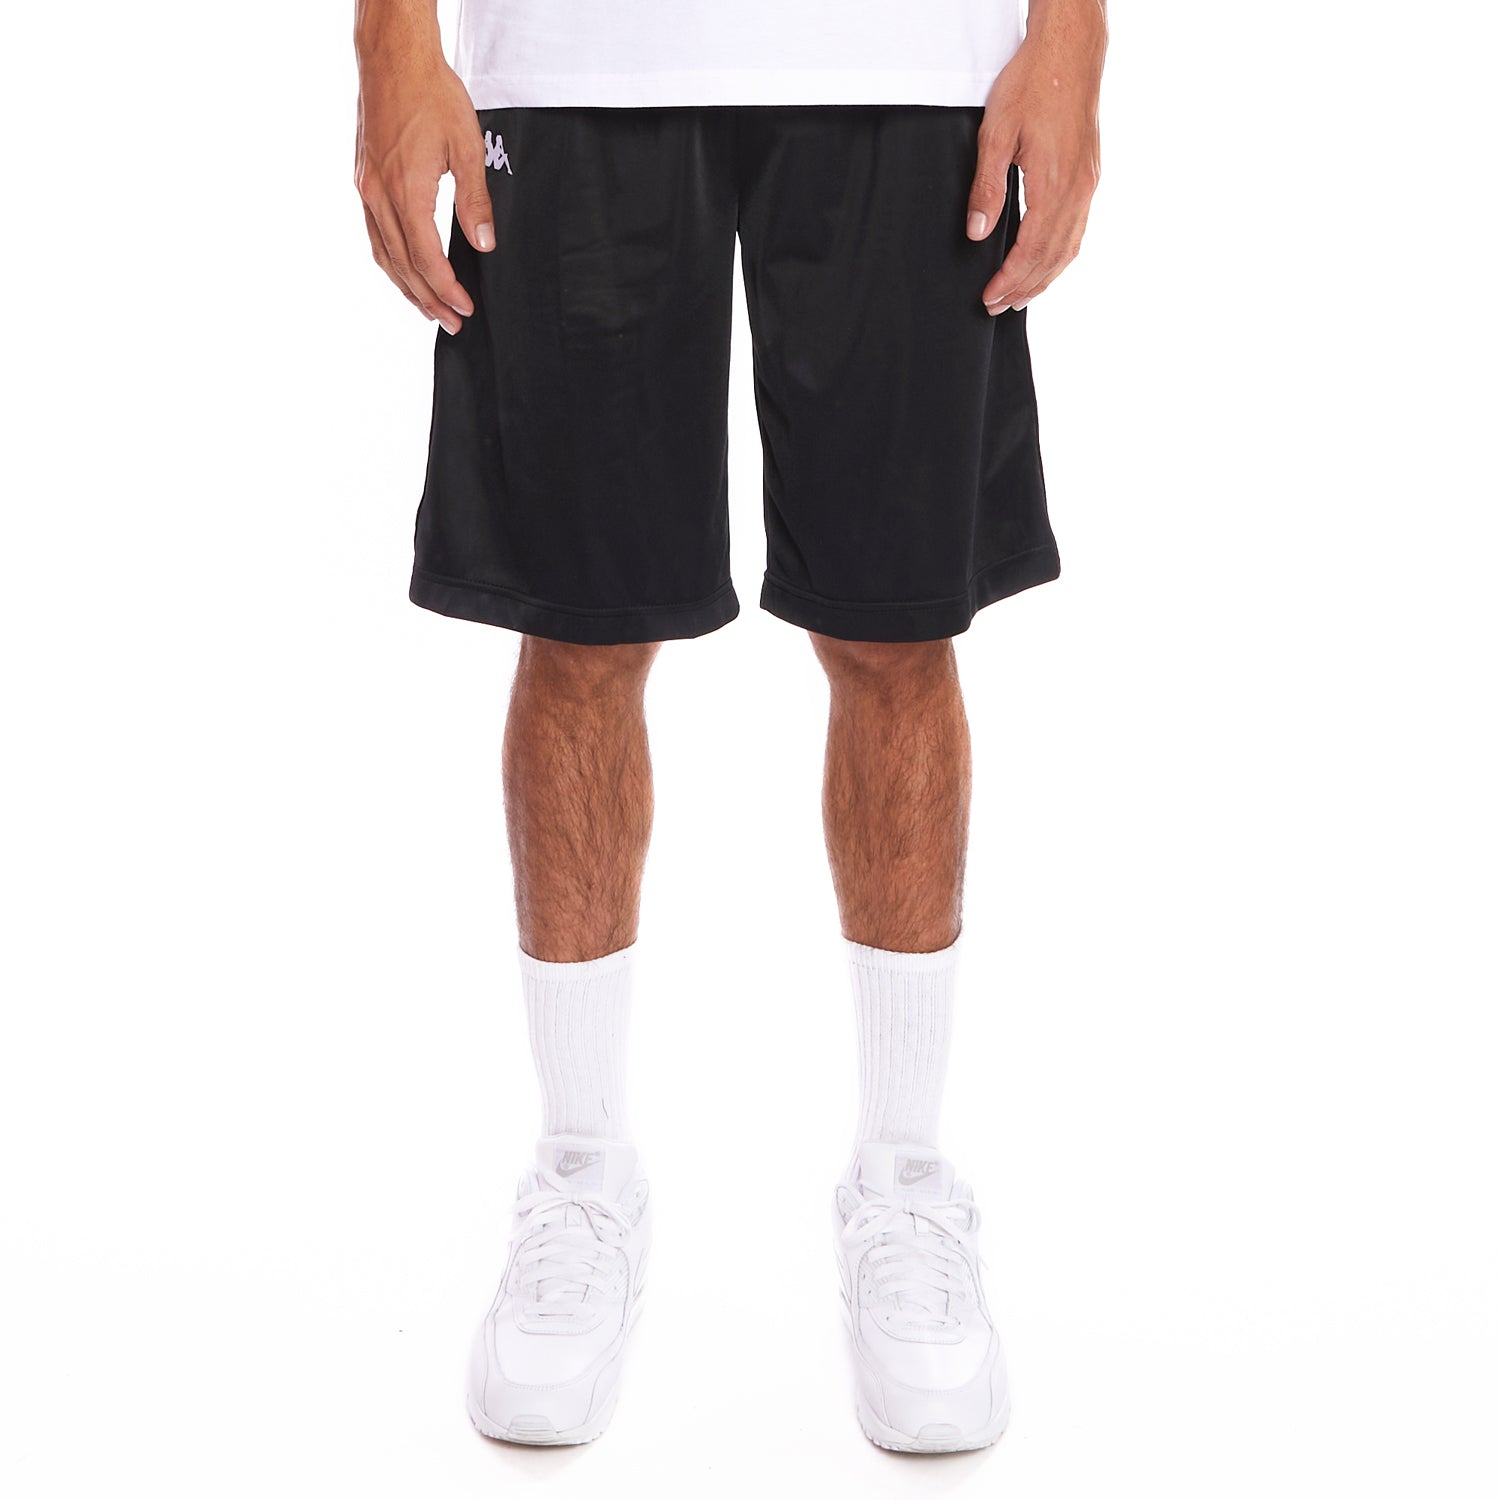 Kappa 222 Banda Treadwellz Shorts - Black White